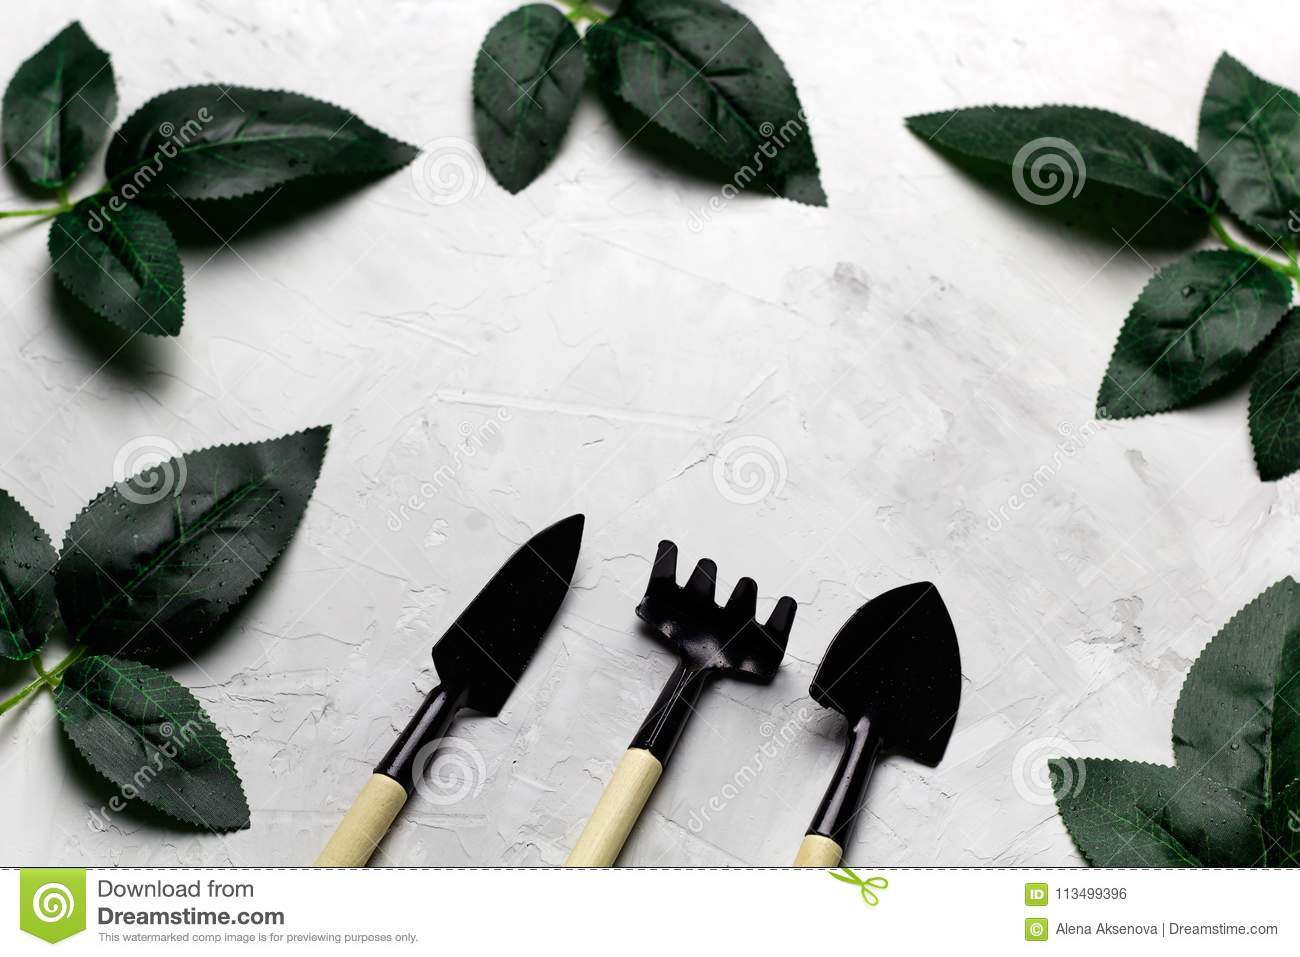 rose leaves and garden tools frame, spring gardening concept